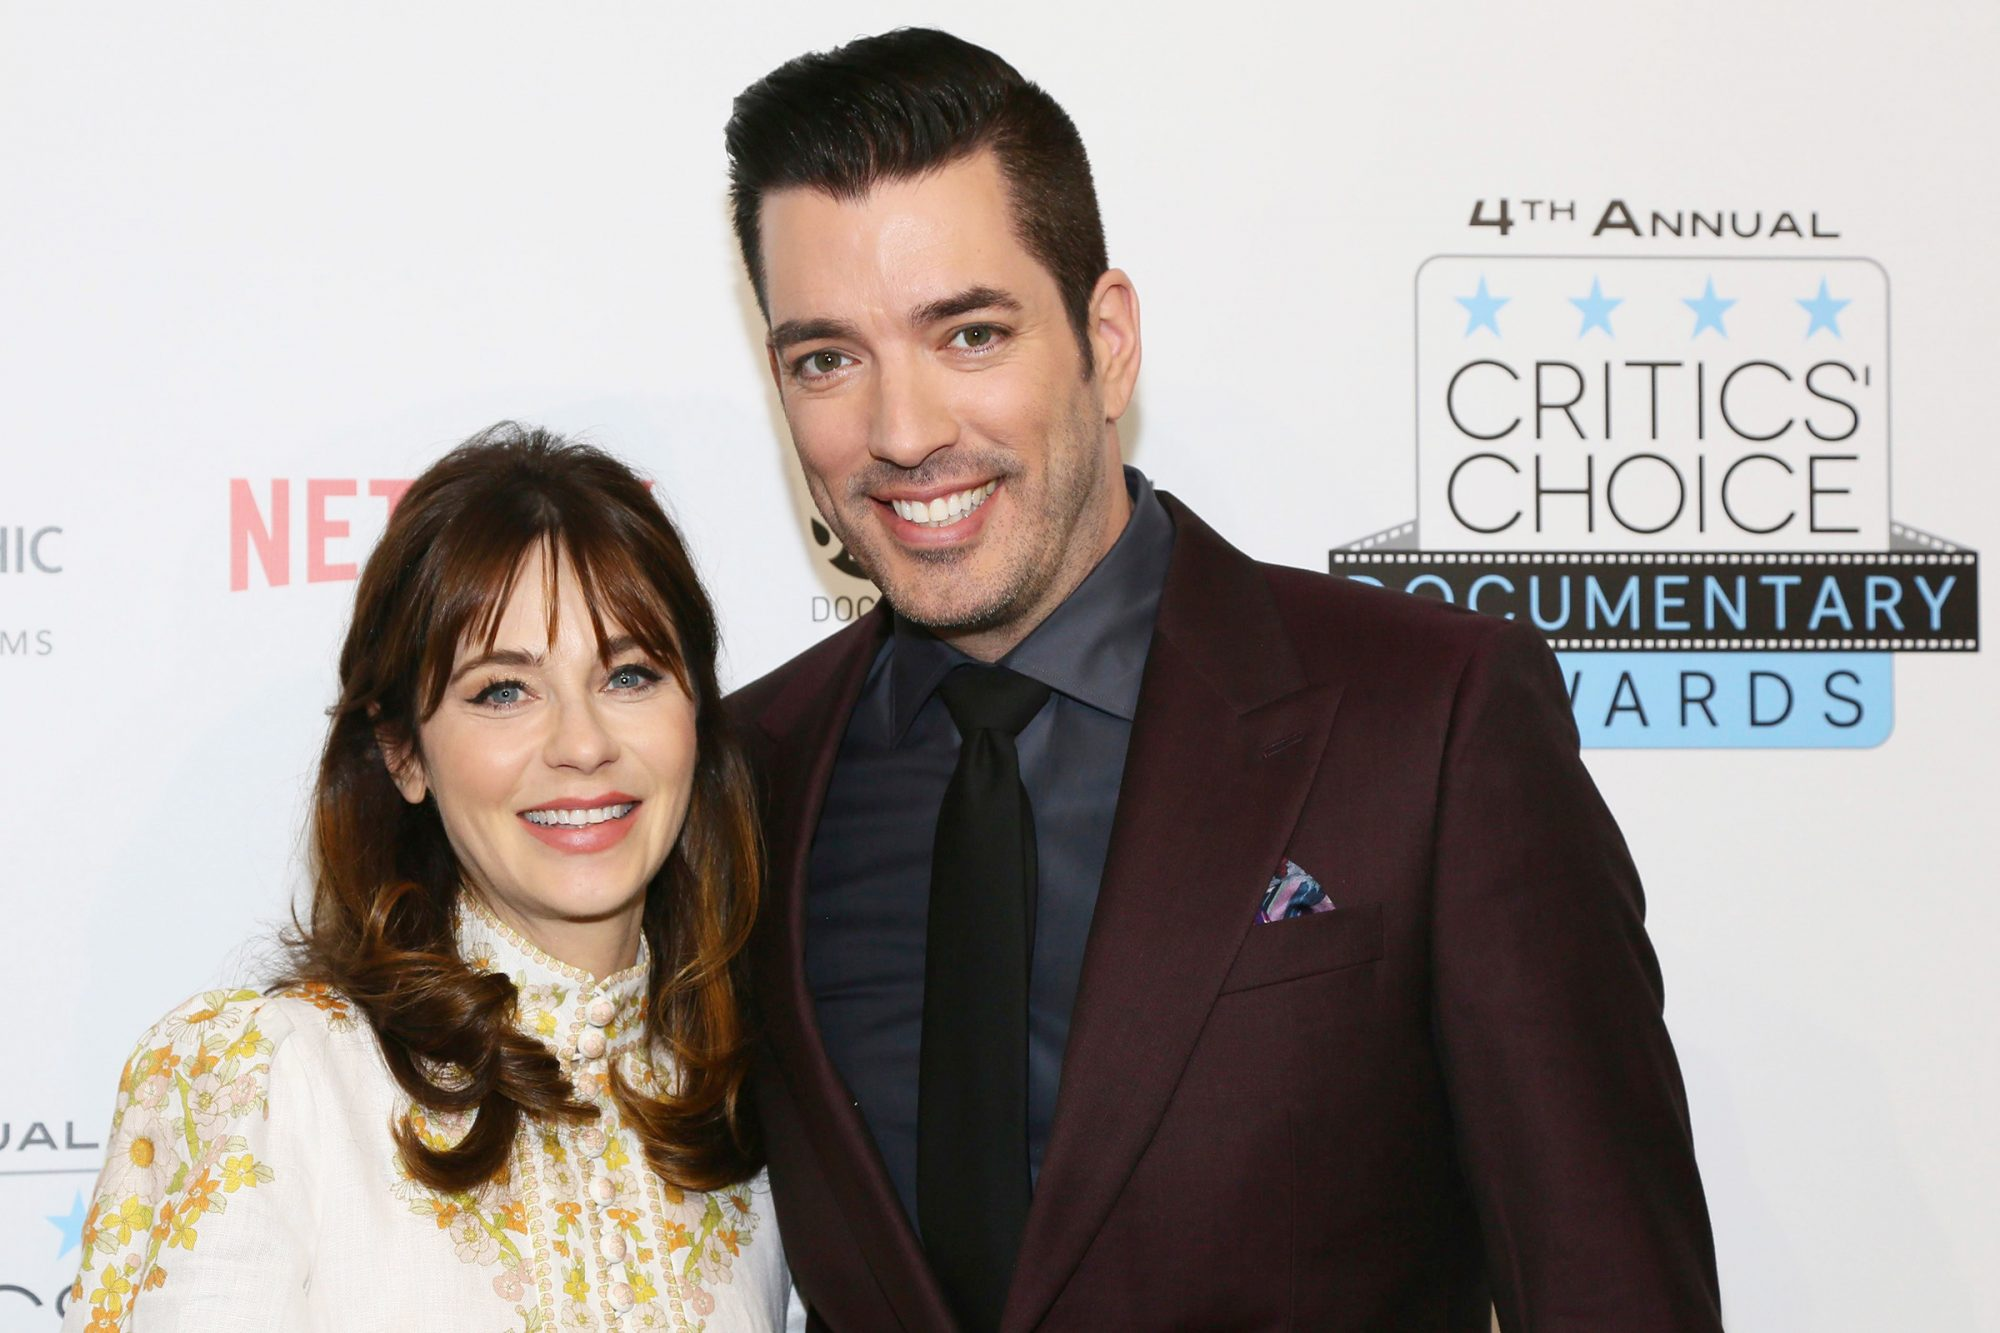 Jonathan Scott is pictured during arrivals with his girlfriend, actress Zooey Deschanel at the Fourth Annual Critics' Choice Documentary Awards in New York, N.Y Fourth Annual Critics' Choice Documentary Awards, Brooklyn, USA - 10 Nov 2019